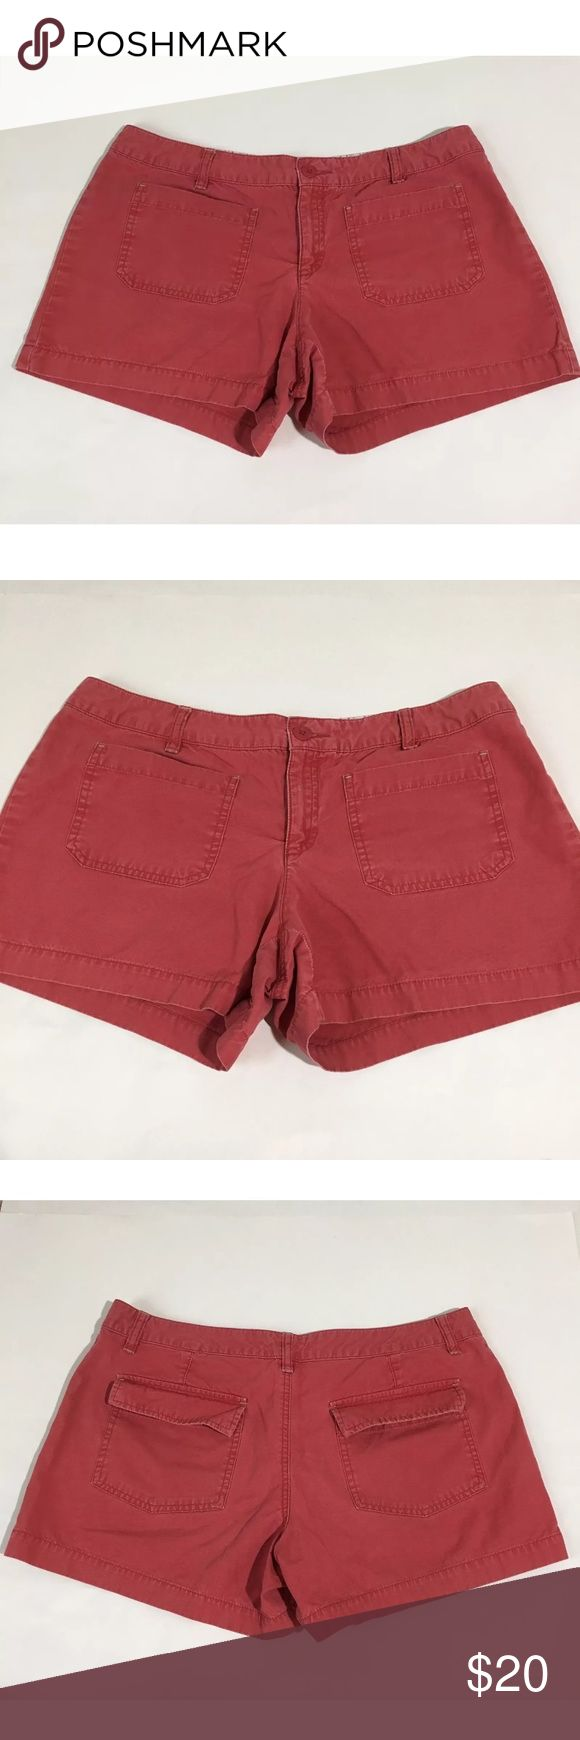 """Women's Old Navy Red Pink Chino Shorts Sz 10 Women's Old Navy red/pink chino shorts. Size 10. Measurements 16"""" waist laying flat, 11.5"""" waist to hem, 3.75"""" inseam. Excellent condition no flaws Old Navy Shorts"""